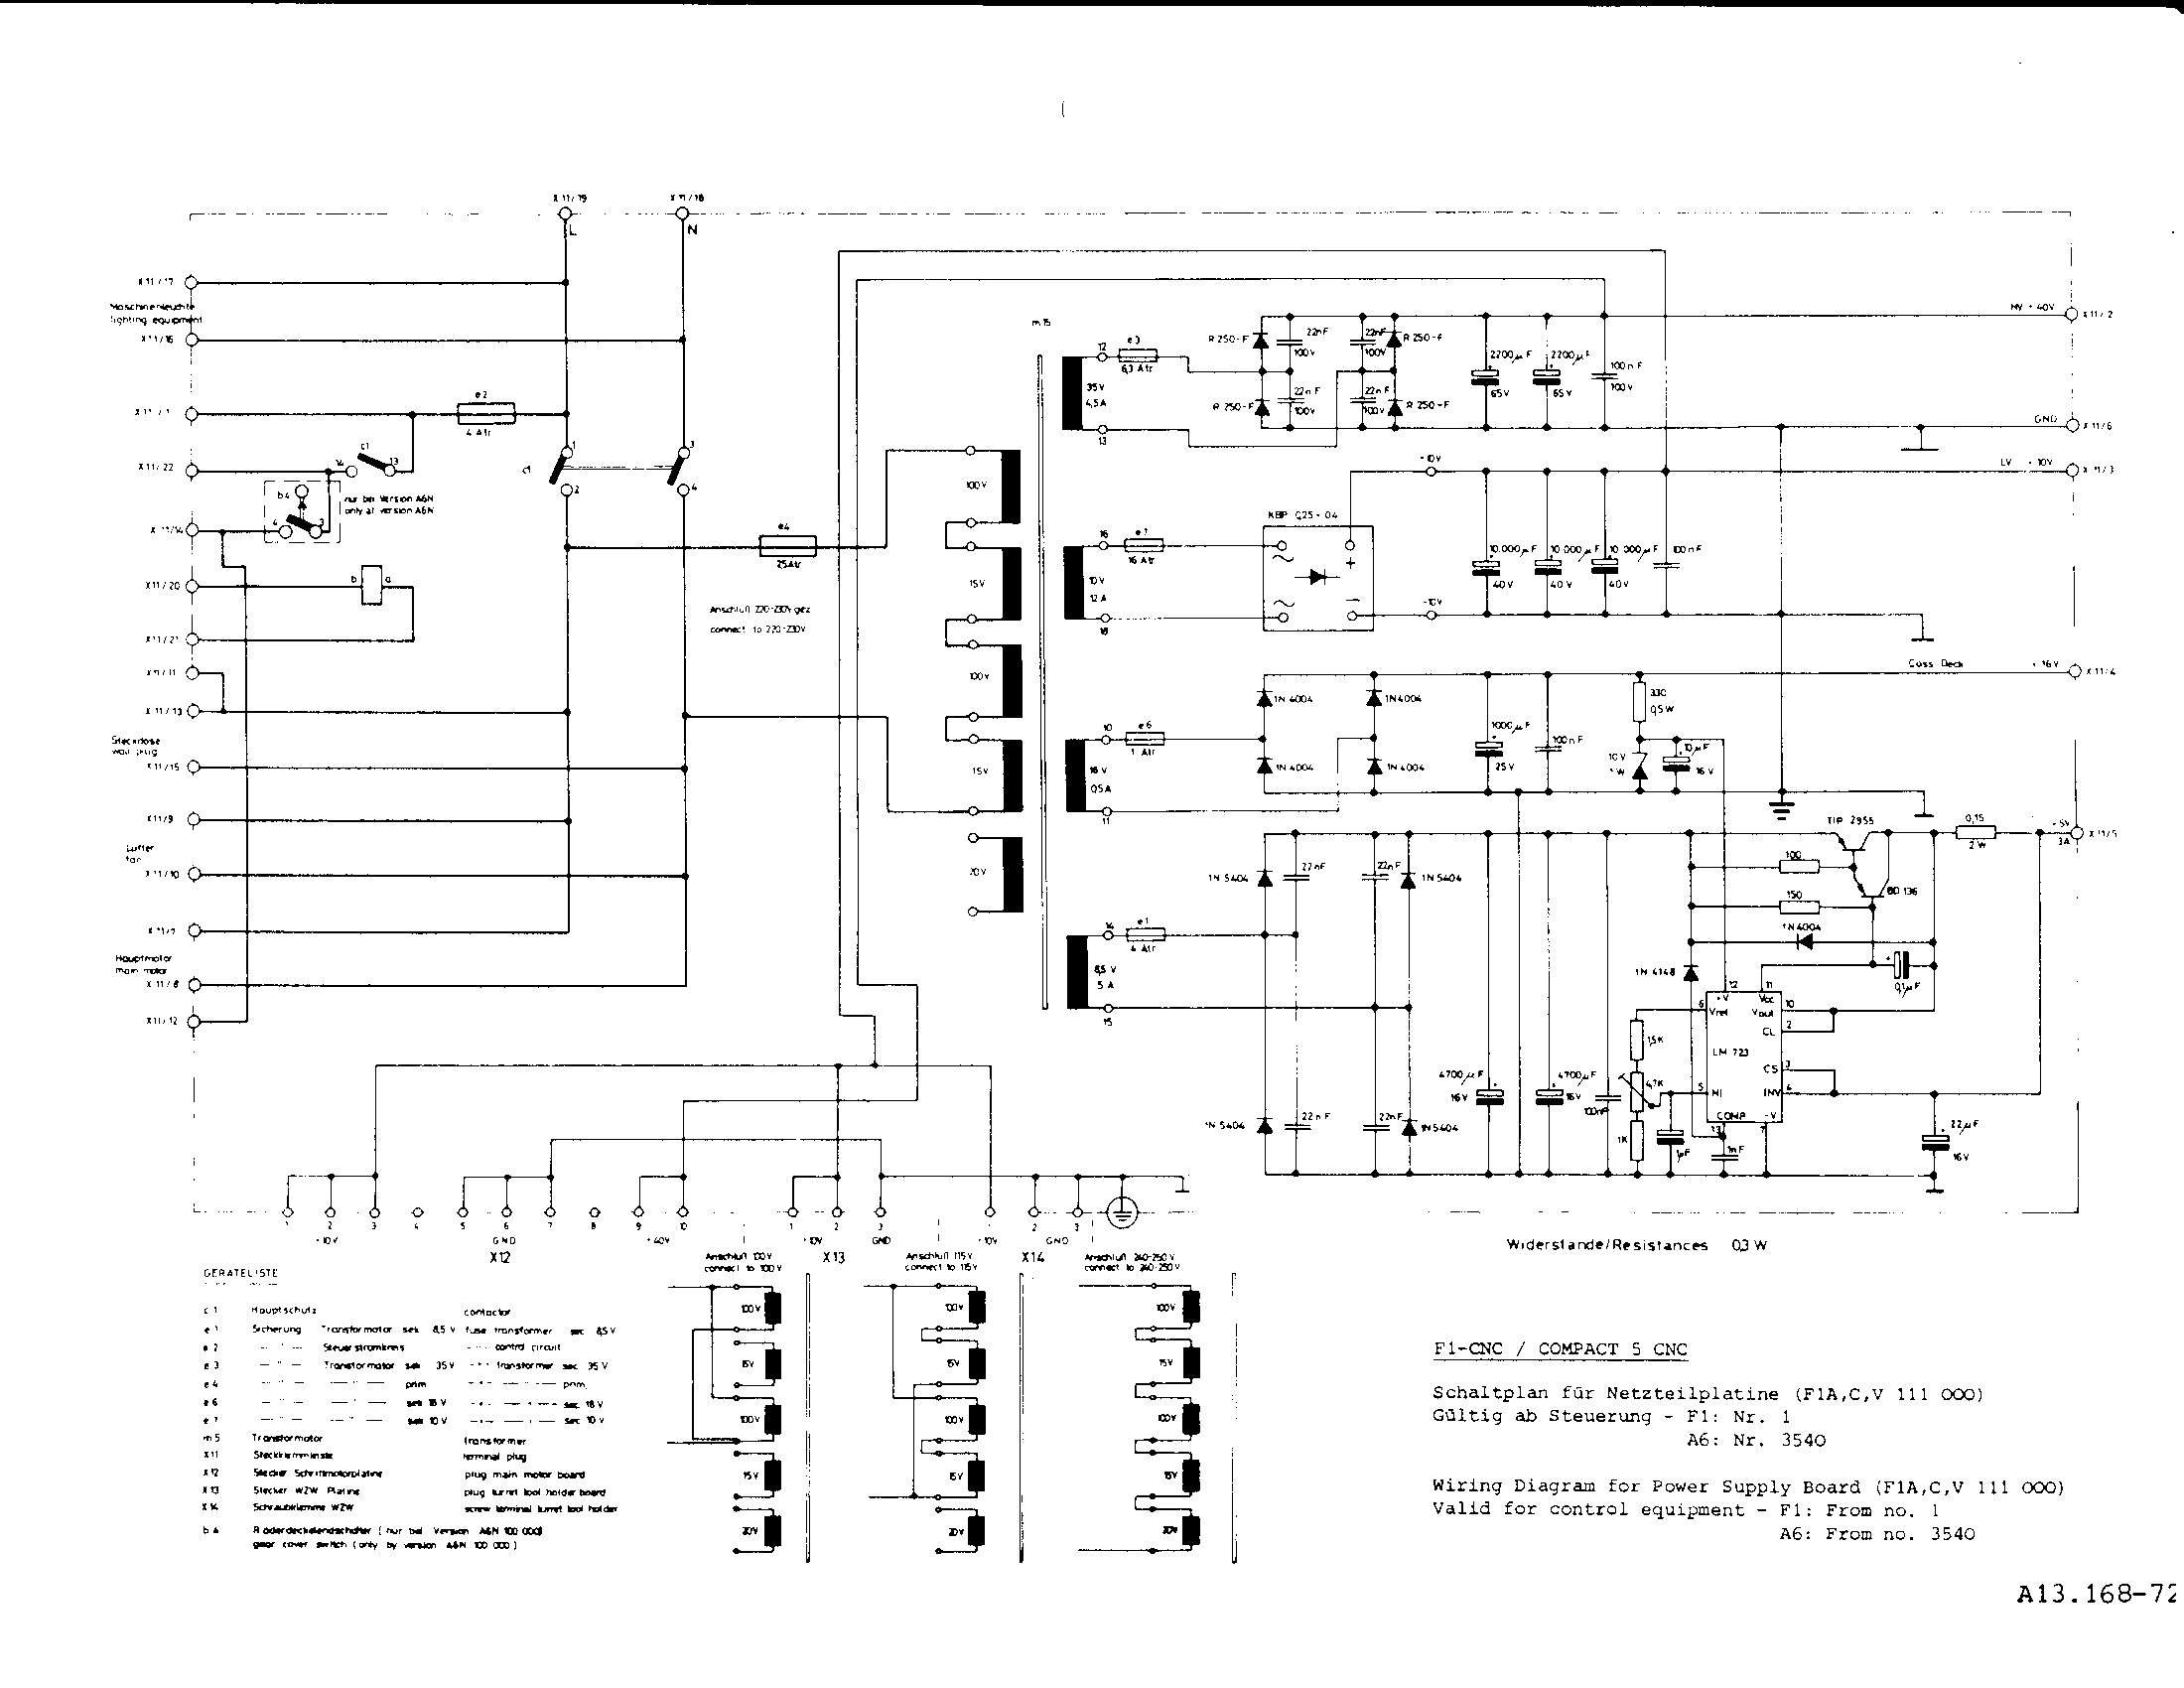 Emco Compact 5 Cnc Electrical Wiring Diagram Diagrams Haas Machine Tool Free Download Schematic Program 6 Manual Finalrutracker Gears 8